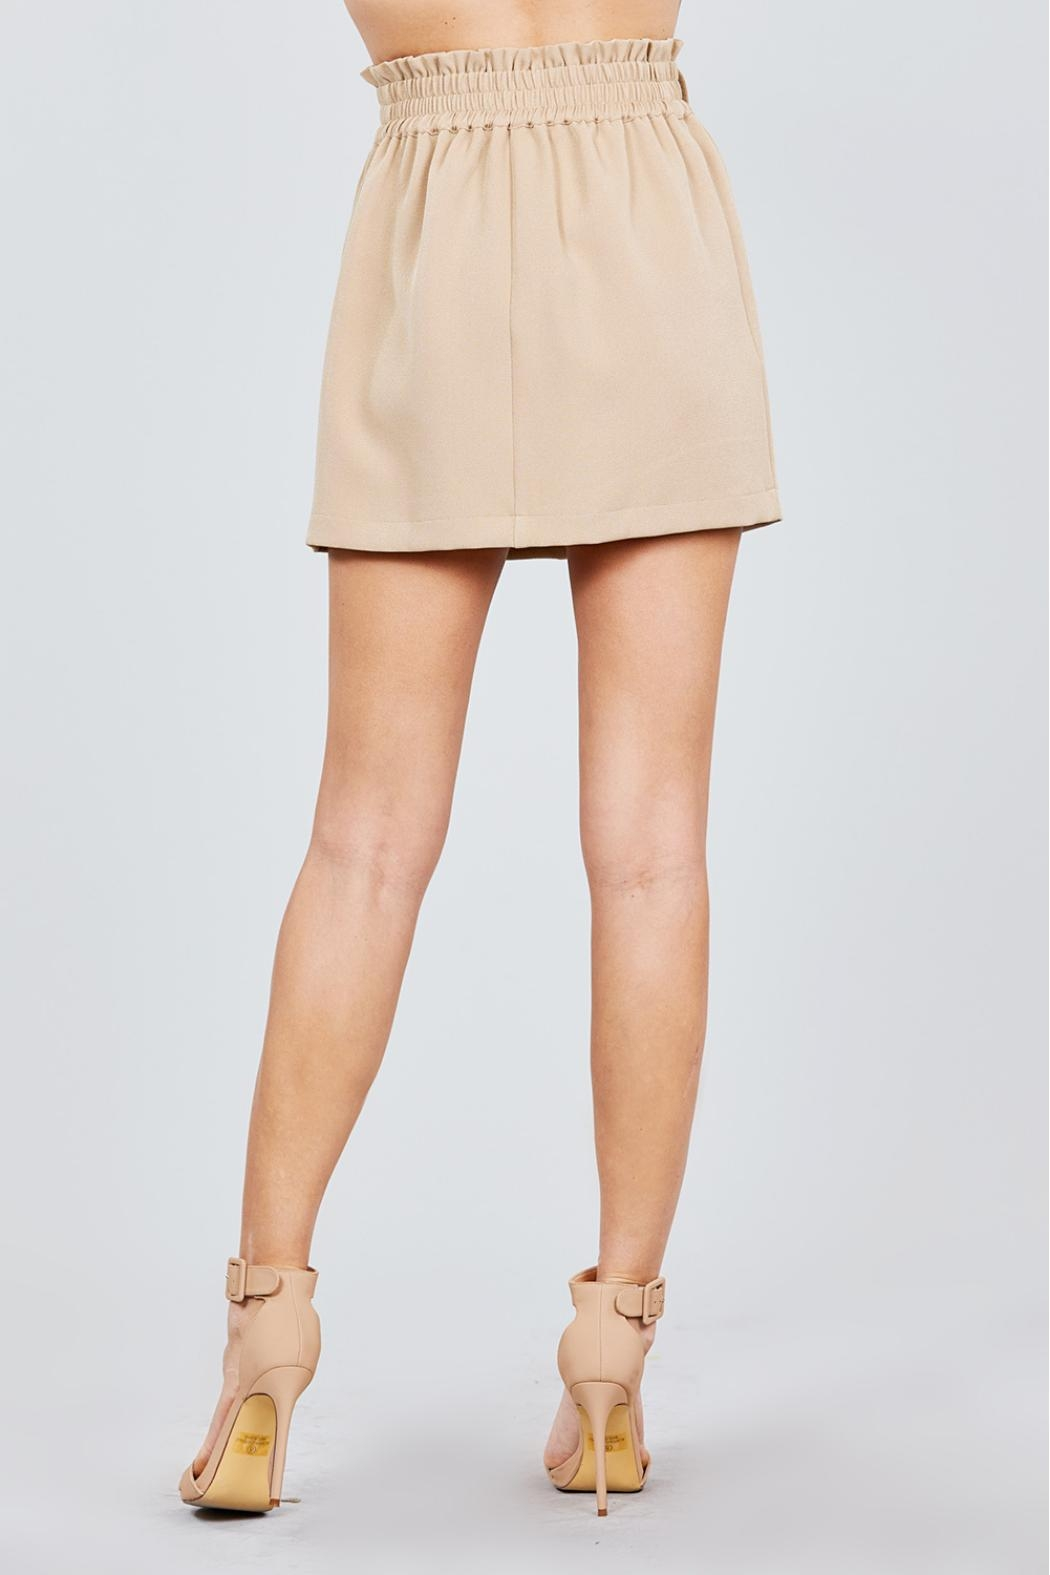 Active USA Khaki Button-Down Skirt - Back Cropped Image